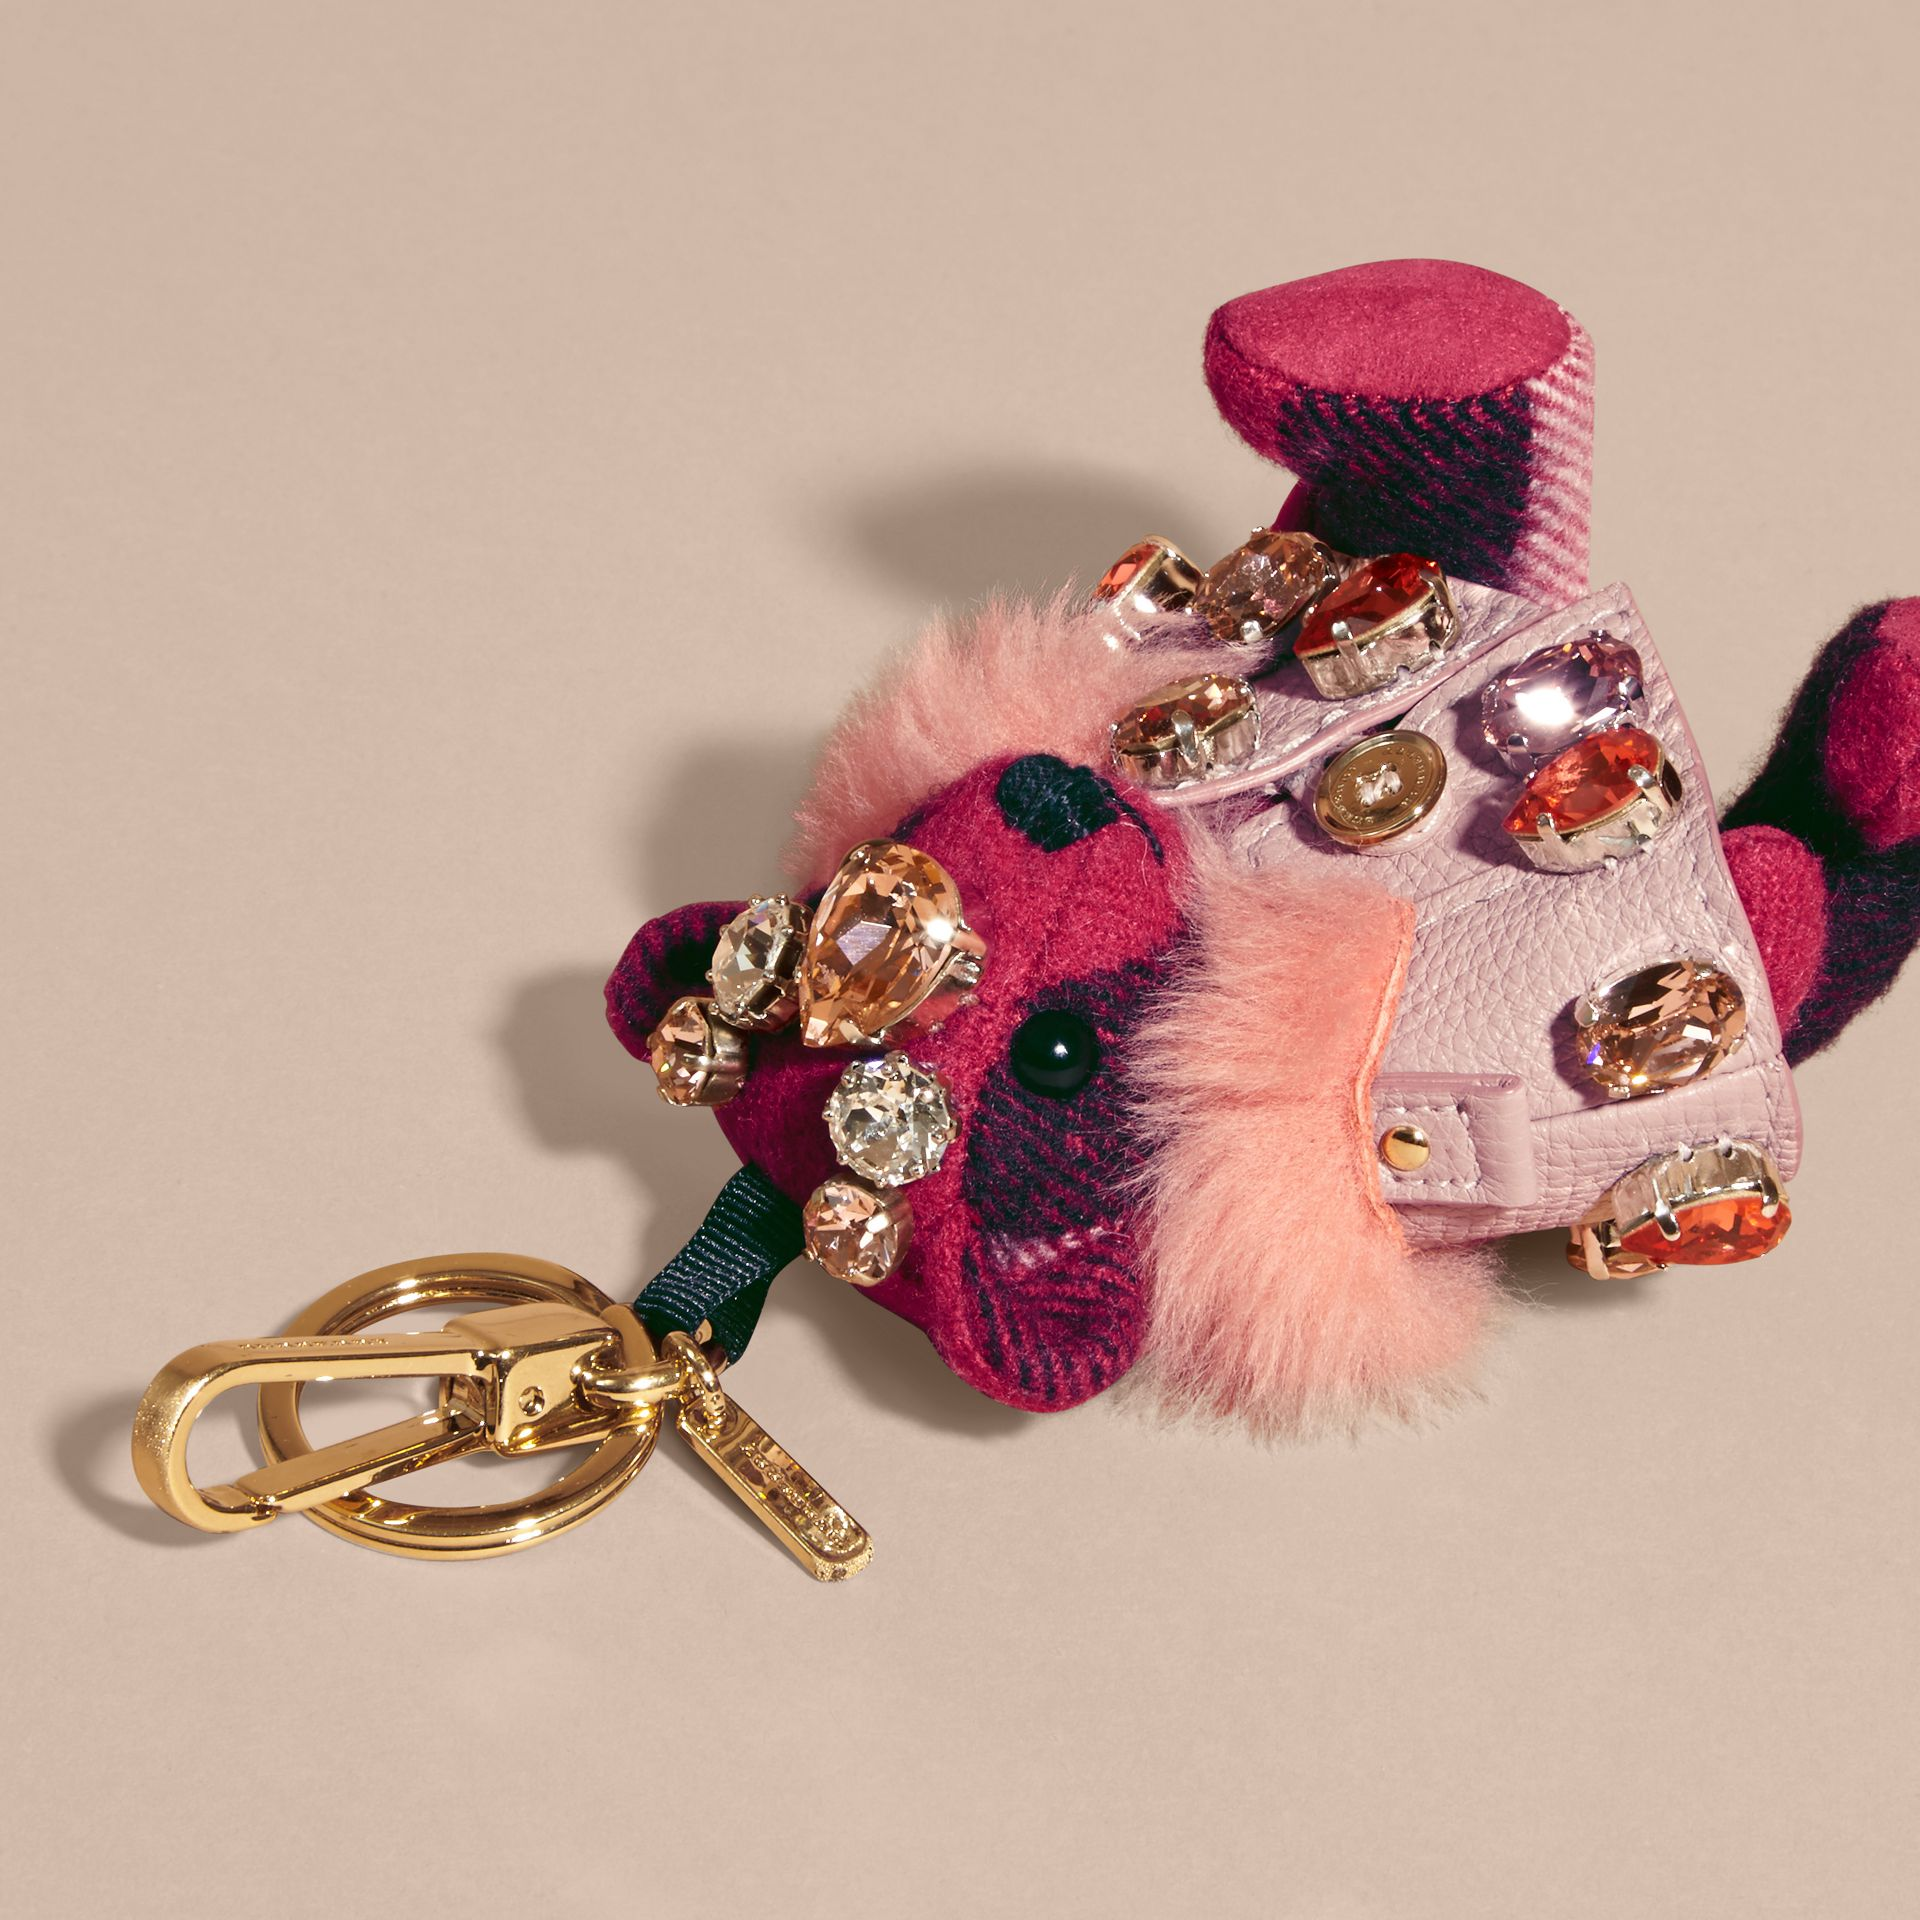 Thomas Bear Charm with Cape and Crystals in Fuchsia Pink - gallery image 4